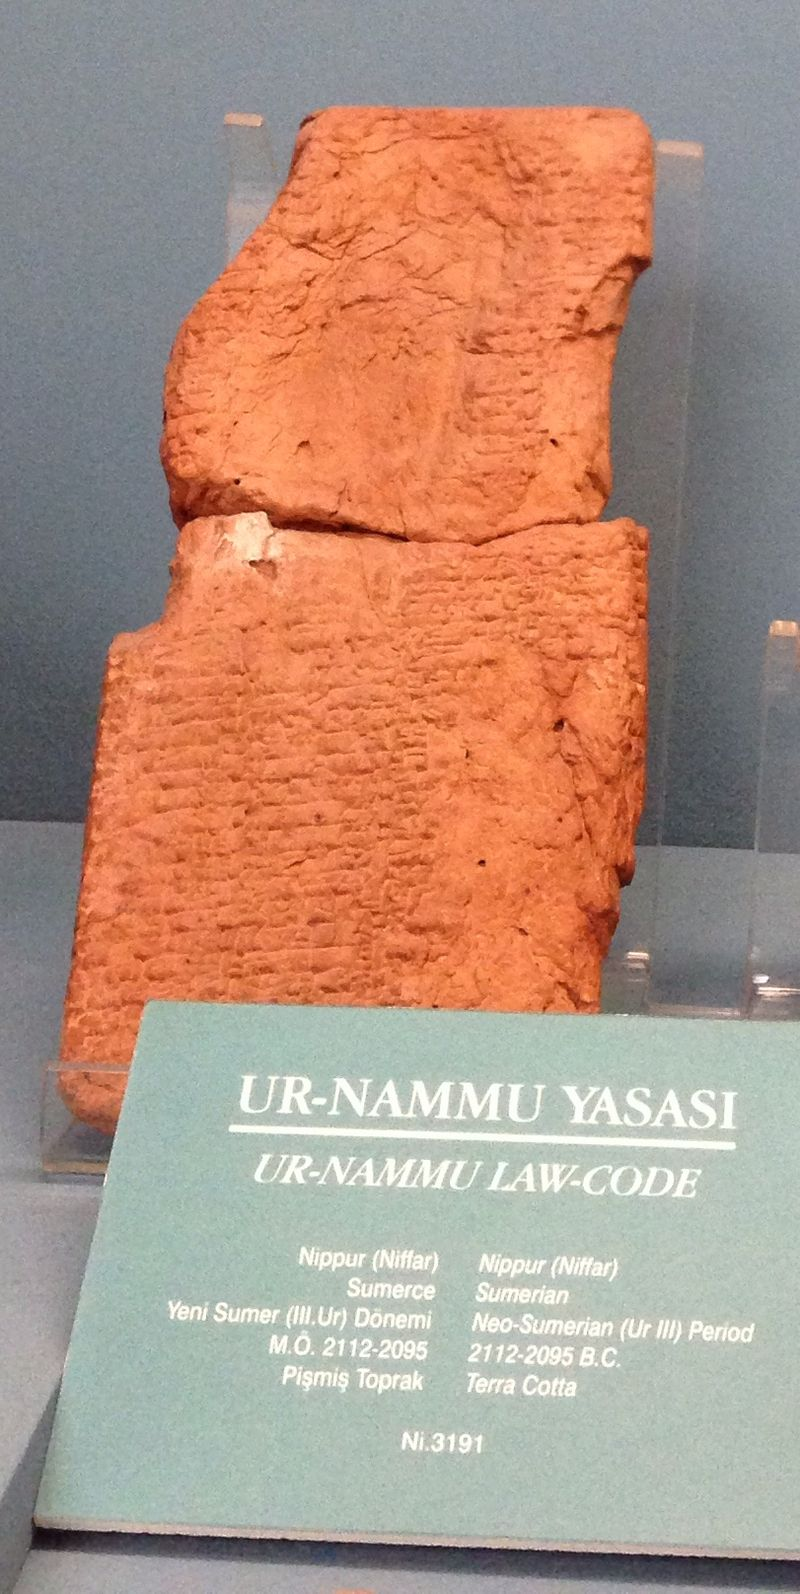 """Ur Nammu code Istanbul"" by Istanbul Archaeology Museum - Own work. Licensed under CC0 via Commons - https://commons.wikimedia.org/wiki/File:Ur_Nammu_code_Istanbul.jpg#/media/File:Ur_Nammu_code_Istanbul.jpg"